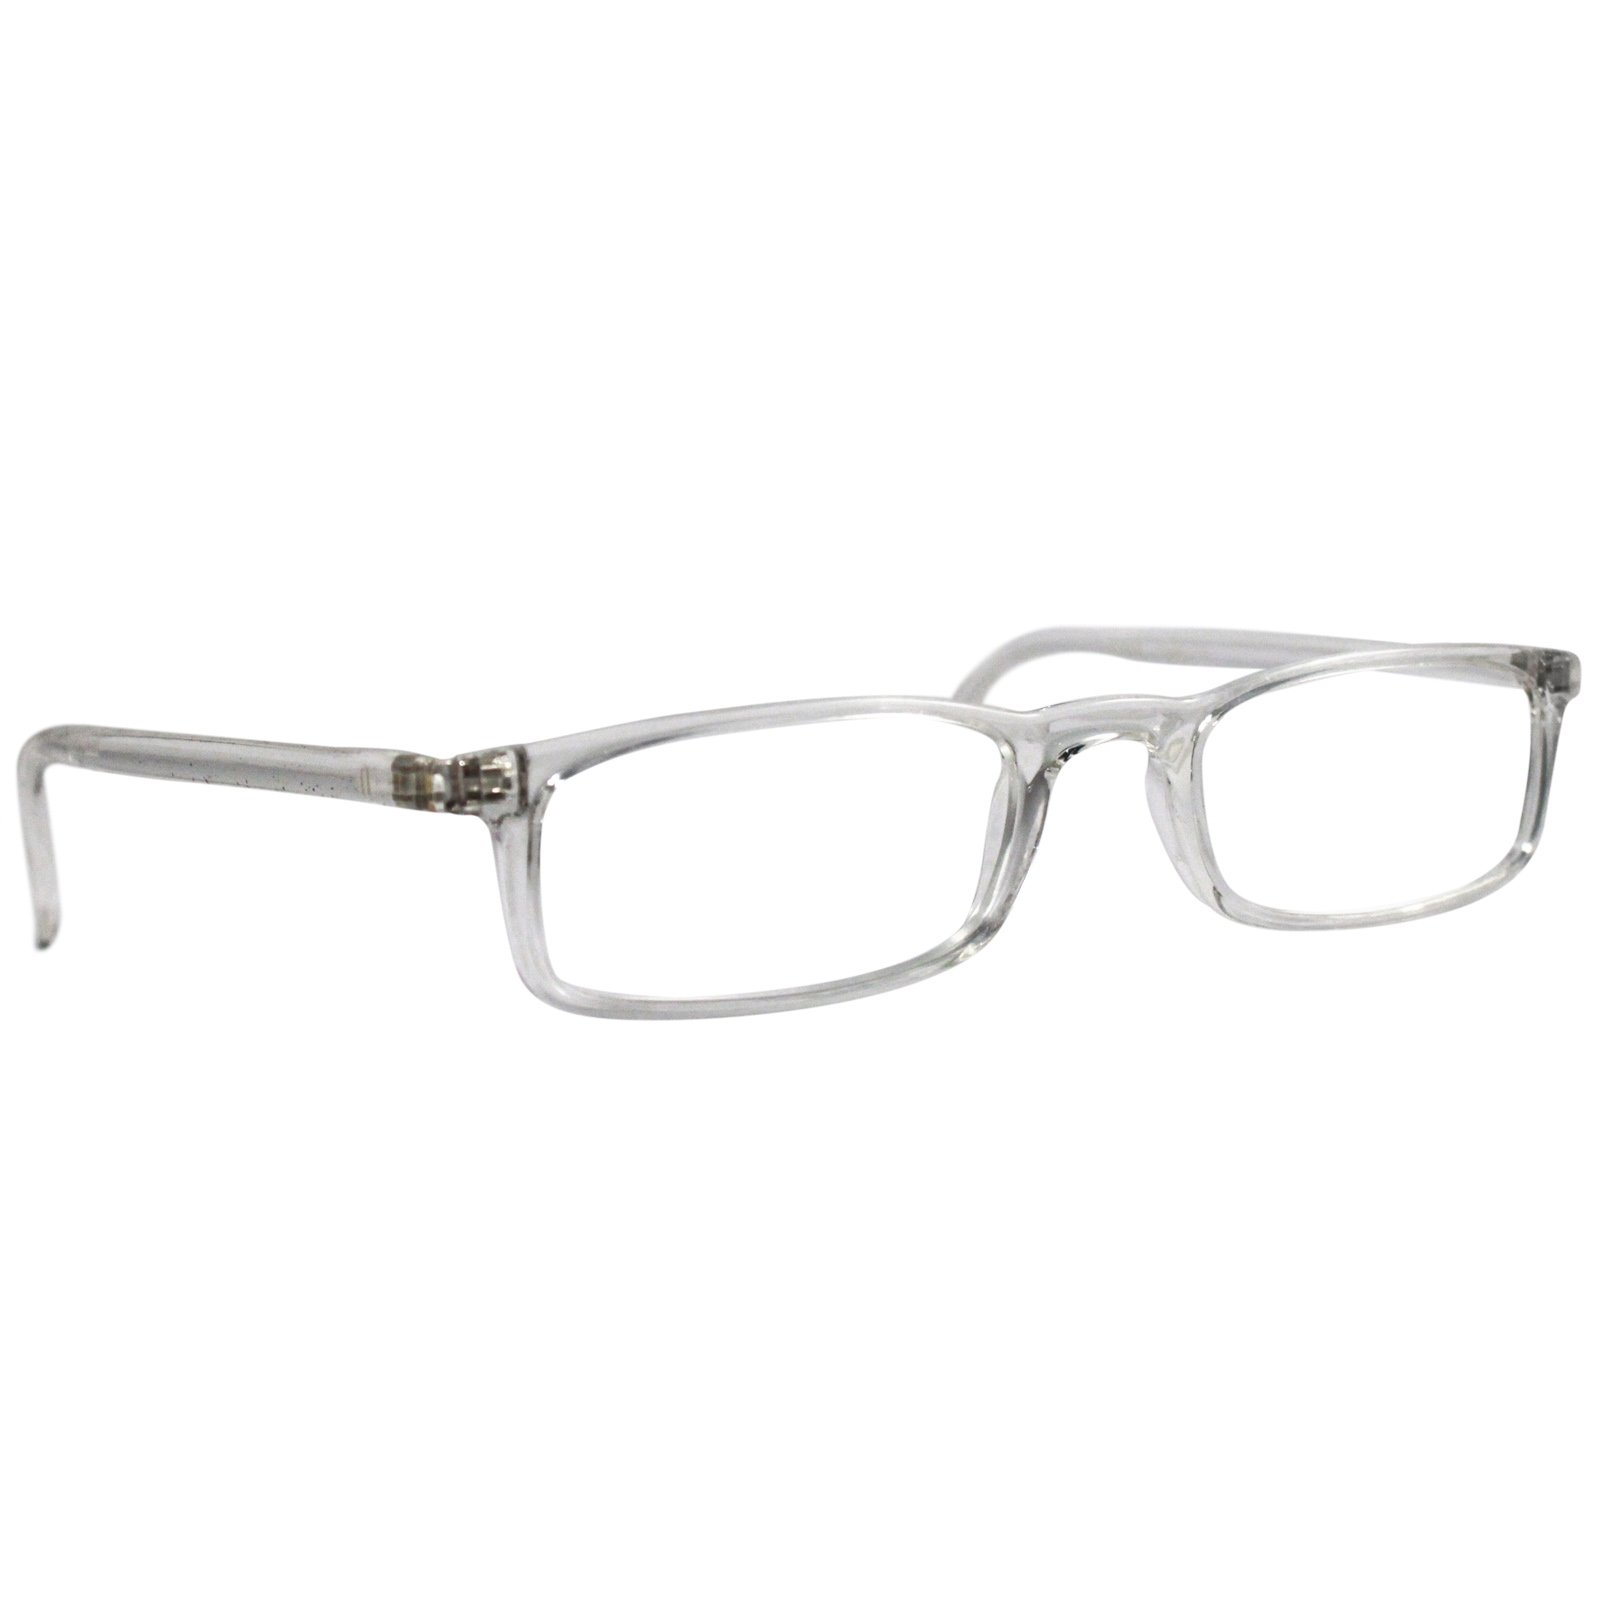 Reading Glasses Nannini Optics Vision Care Italian Fashion Readers - Crystal 2.0